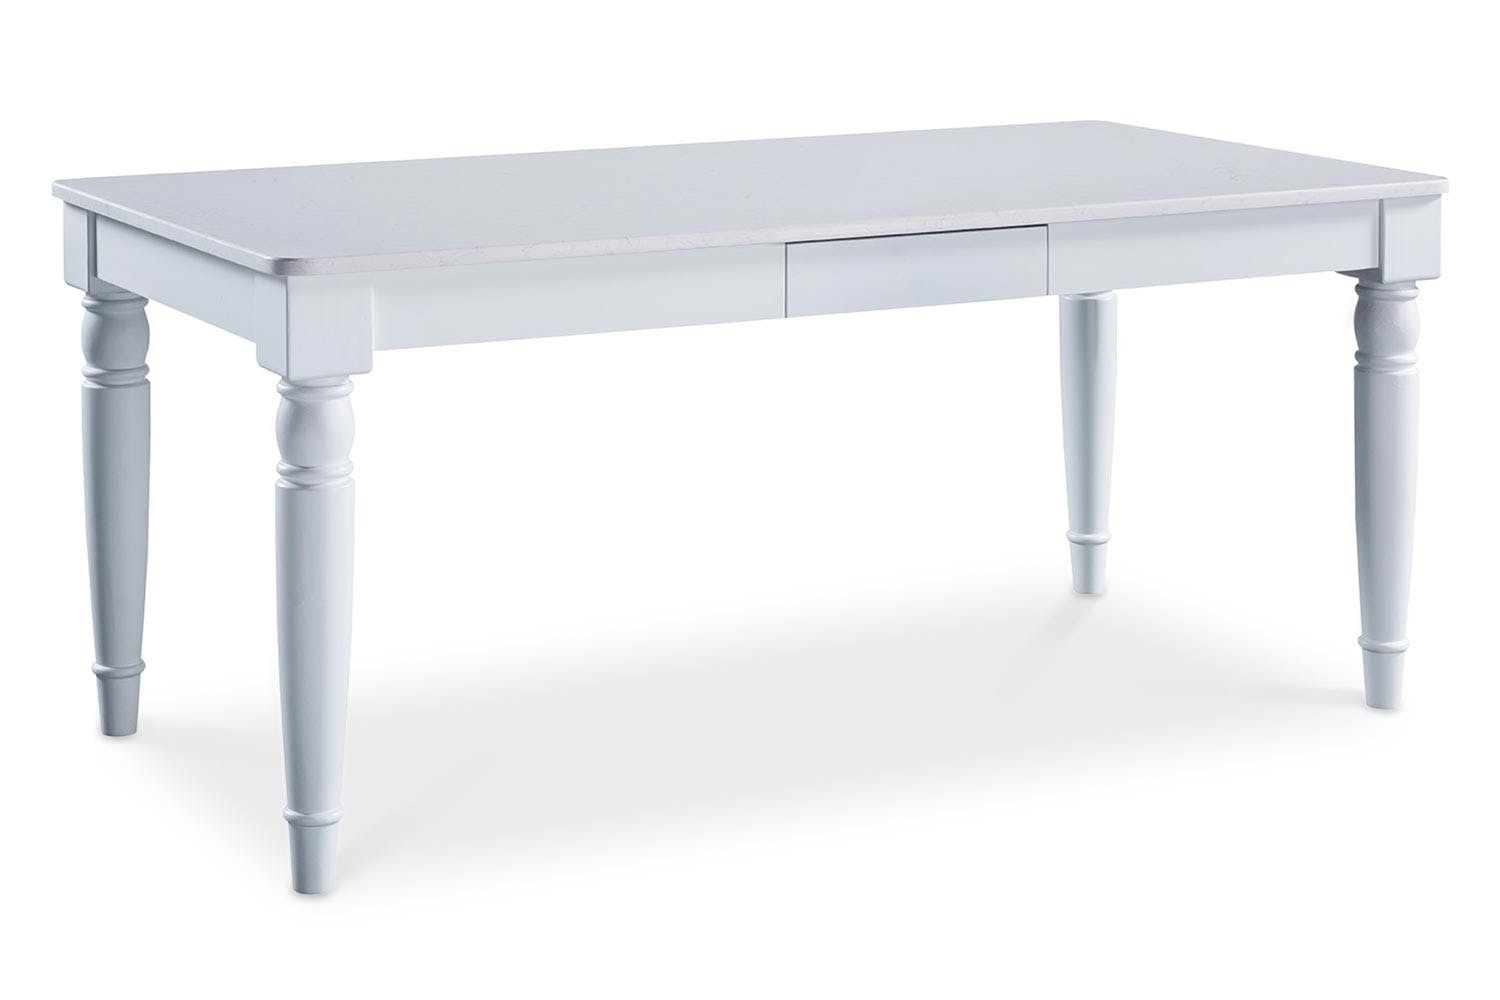 Carlow Dining Table 160cm Harvey Norman Ireland